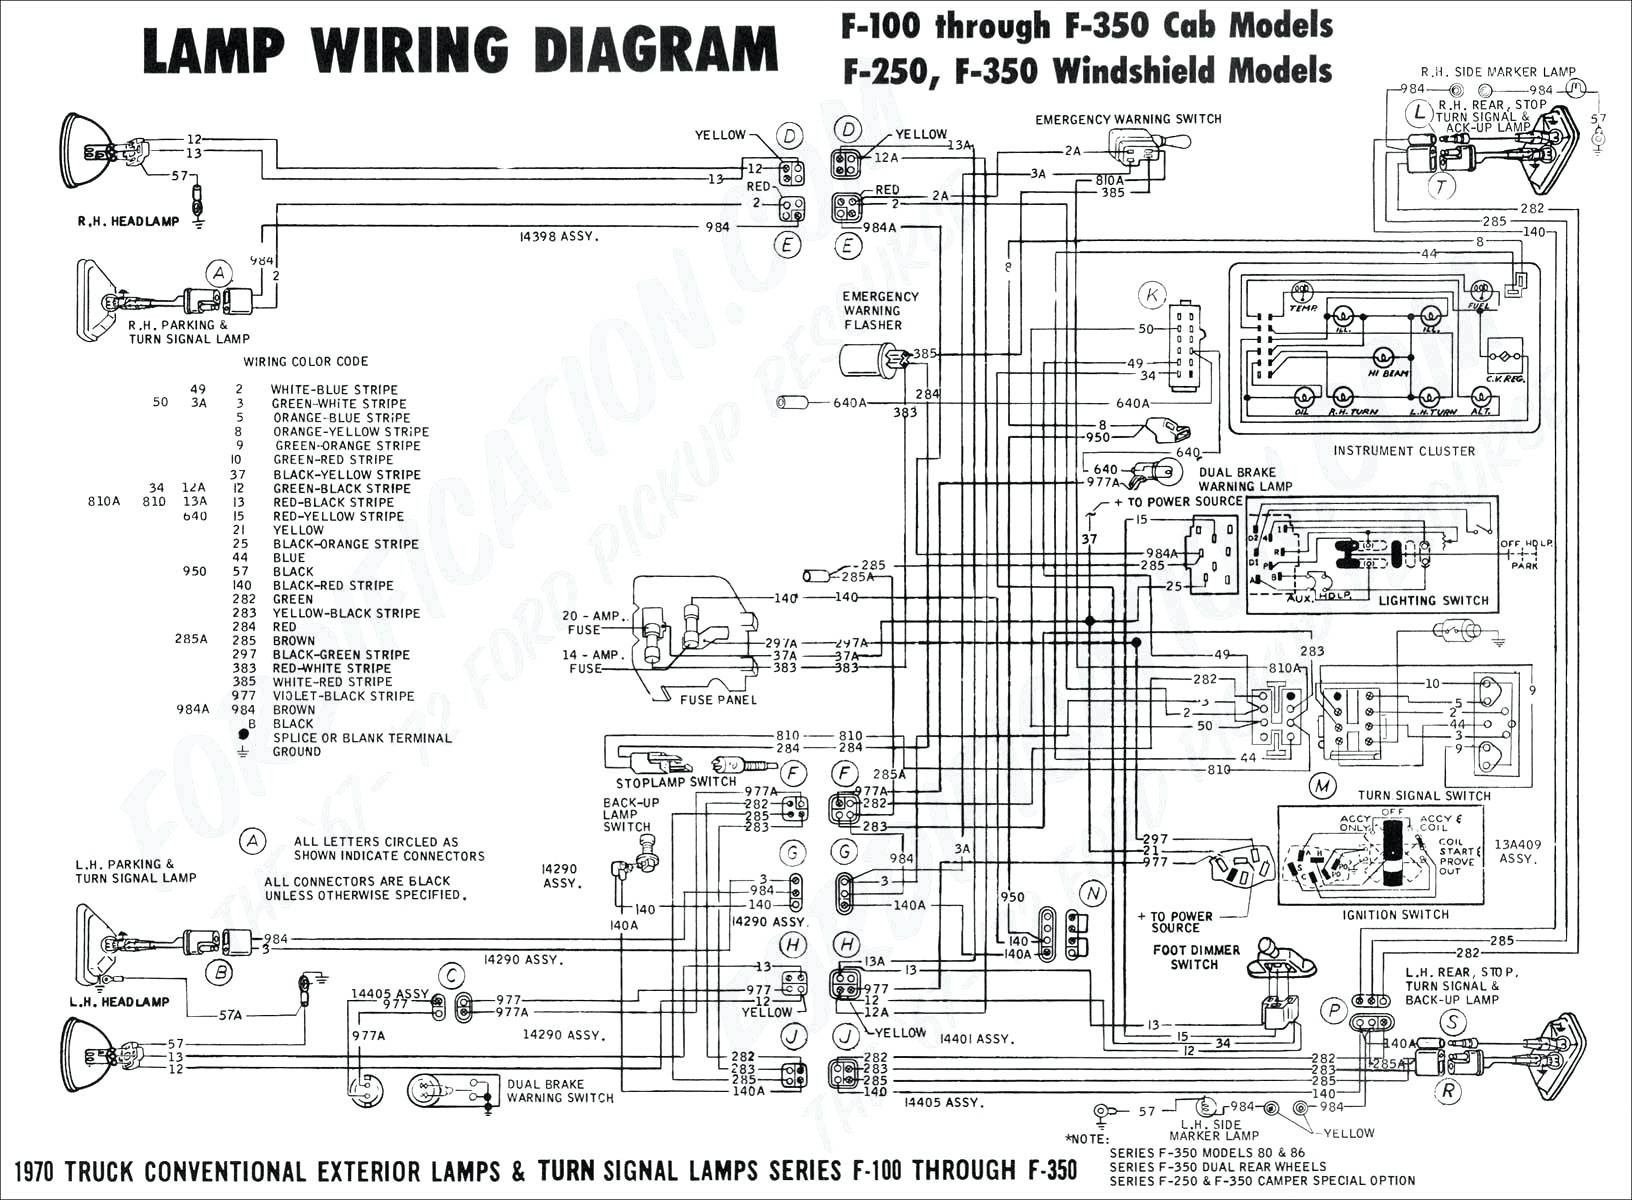 2004 ford f150 wiring diagram download Download-Wiring Diagram ford Trailer Plug Fresh F150 Trailer Wiring Diagram Download 1-r